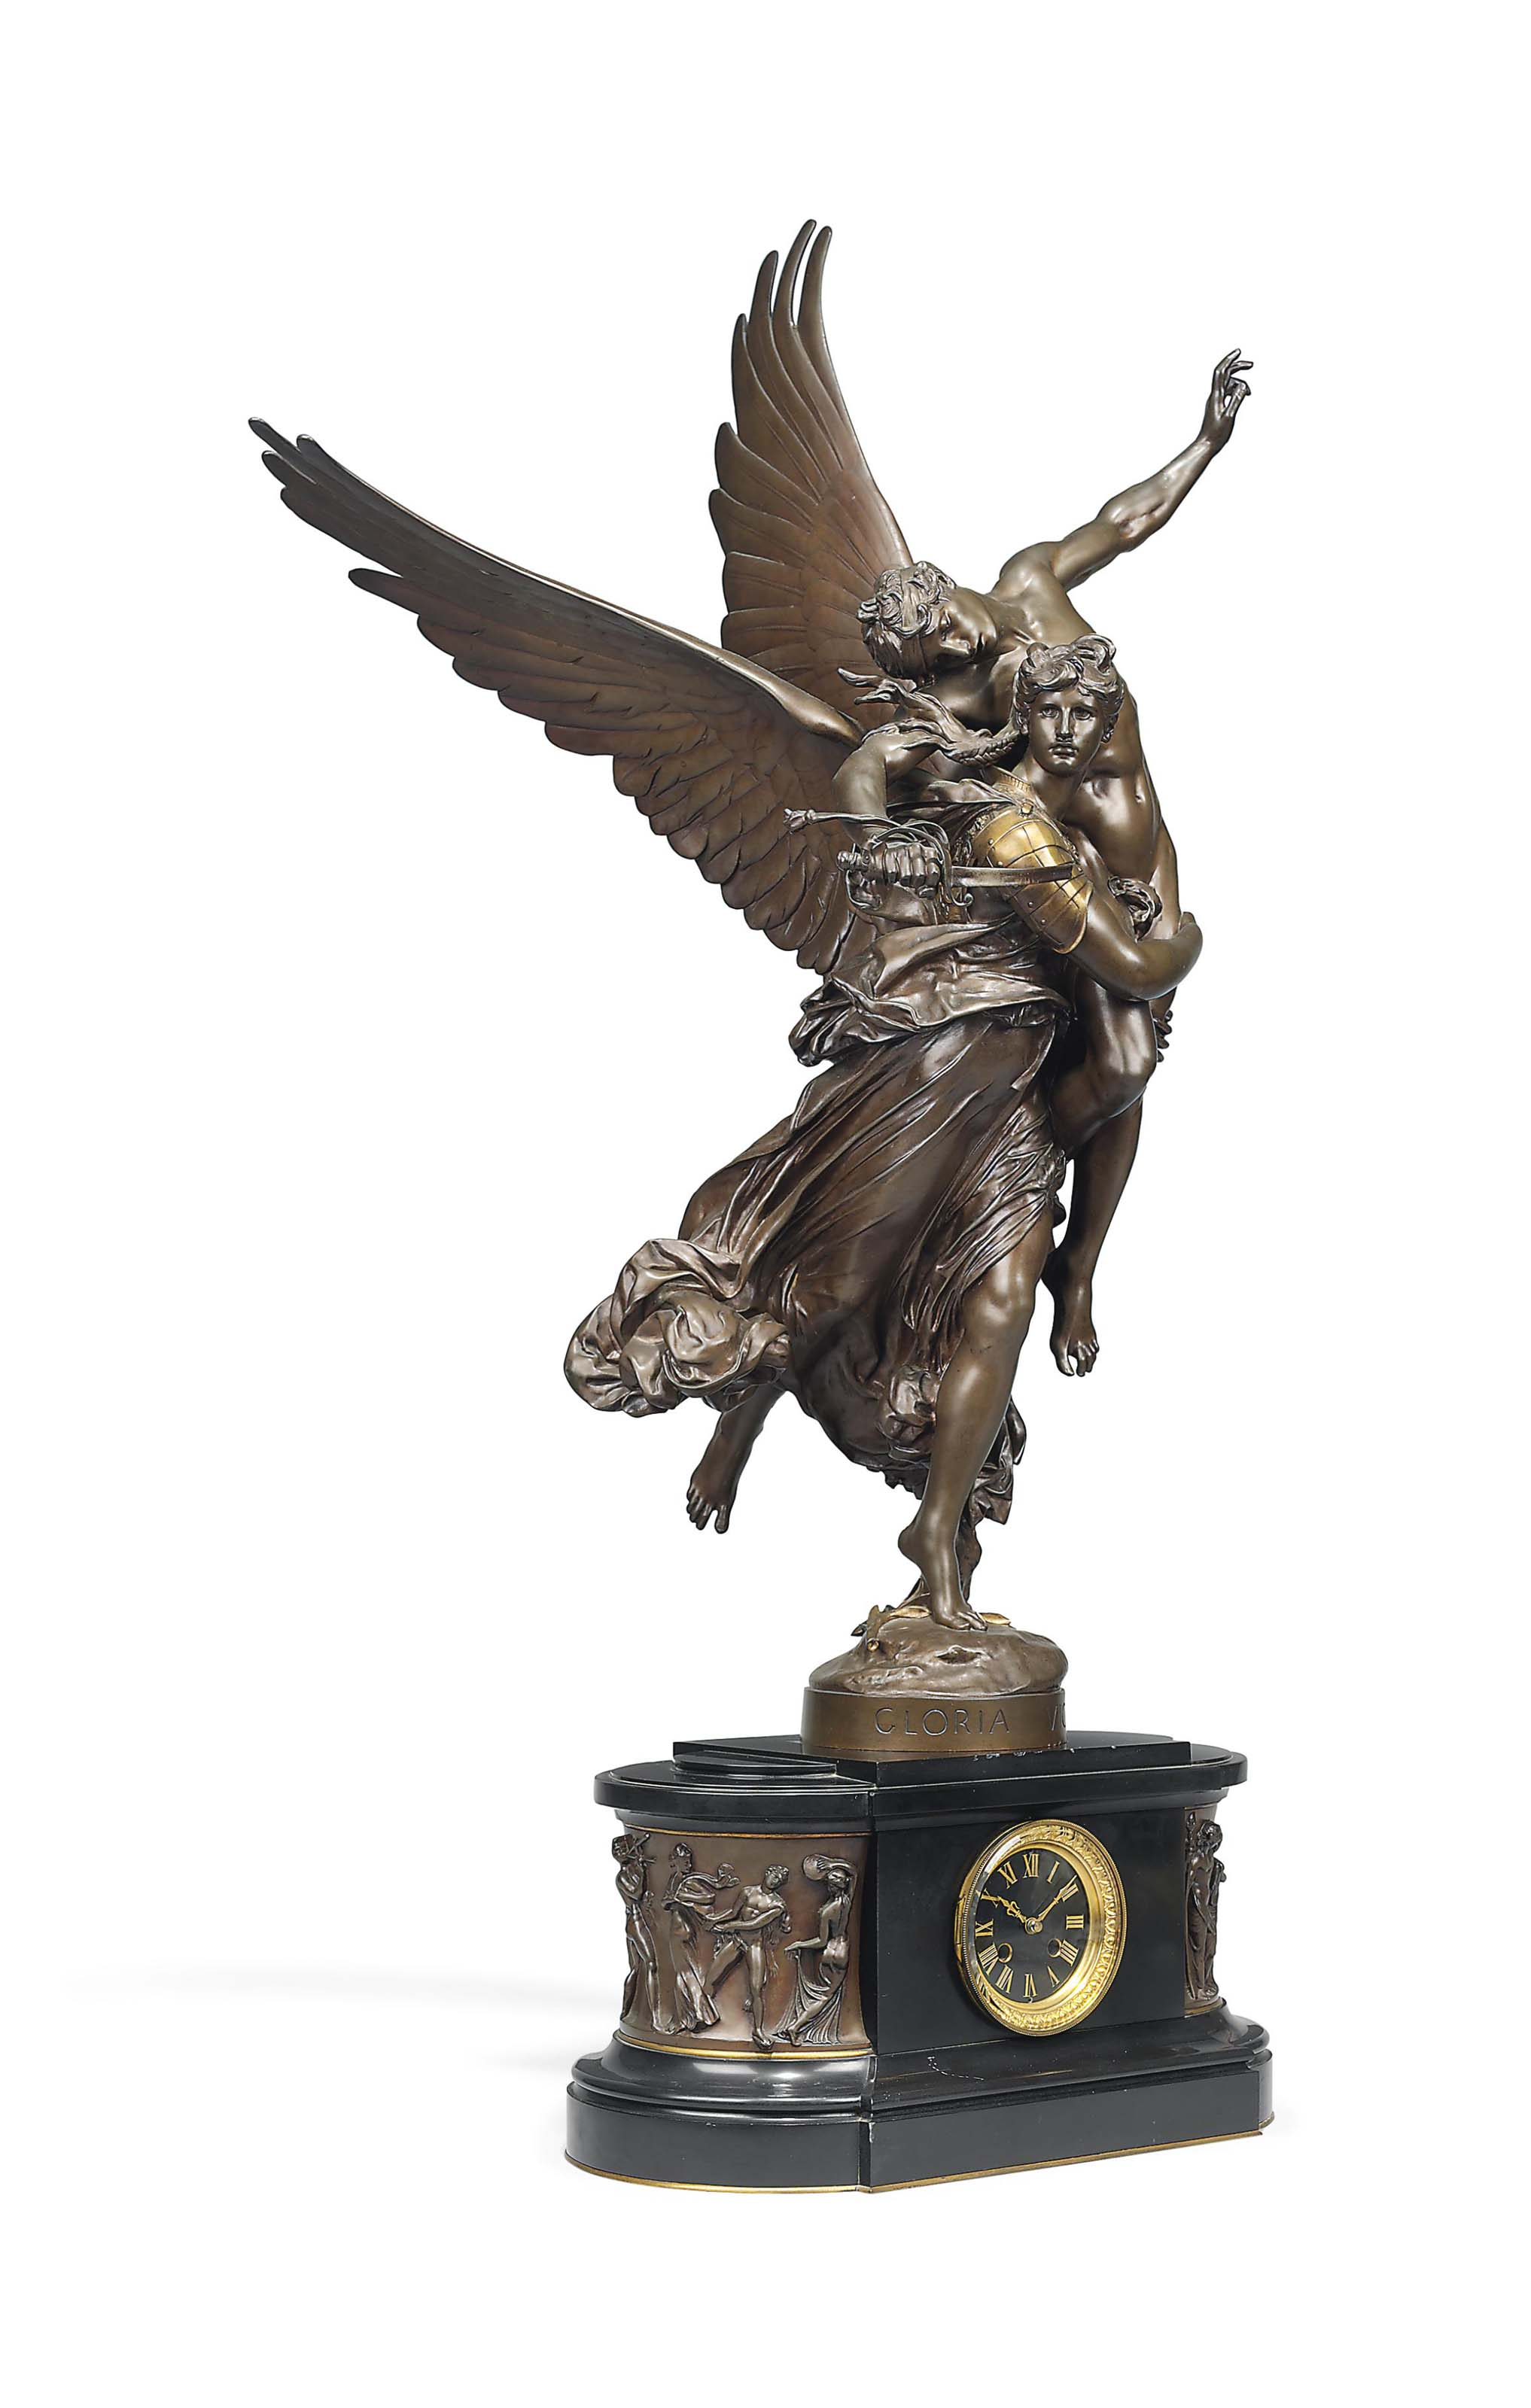 A FRENCH GILT AND PATINATED BRONZE GROUP ENTITLED 'GLORIA VICTIS', ON BLACK MARBLE AND BRONZE CLOCK BASE